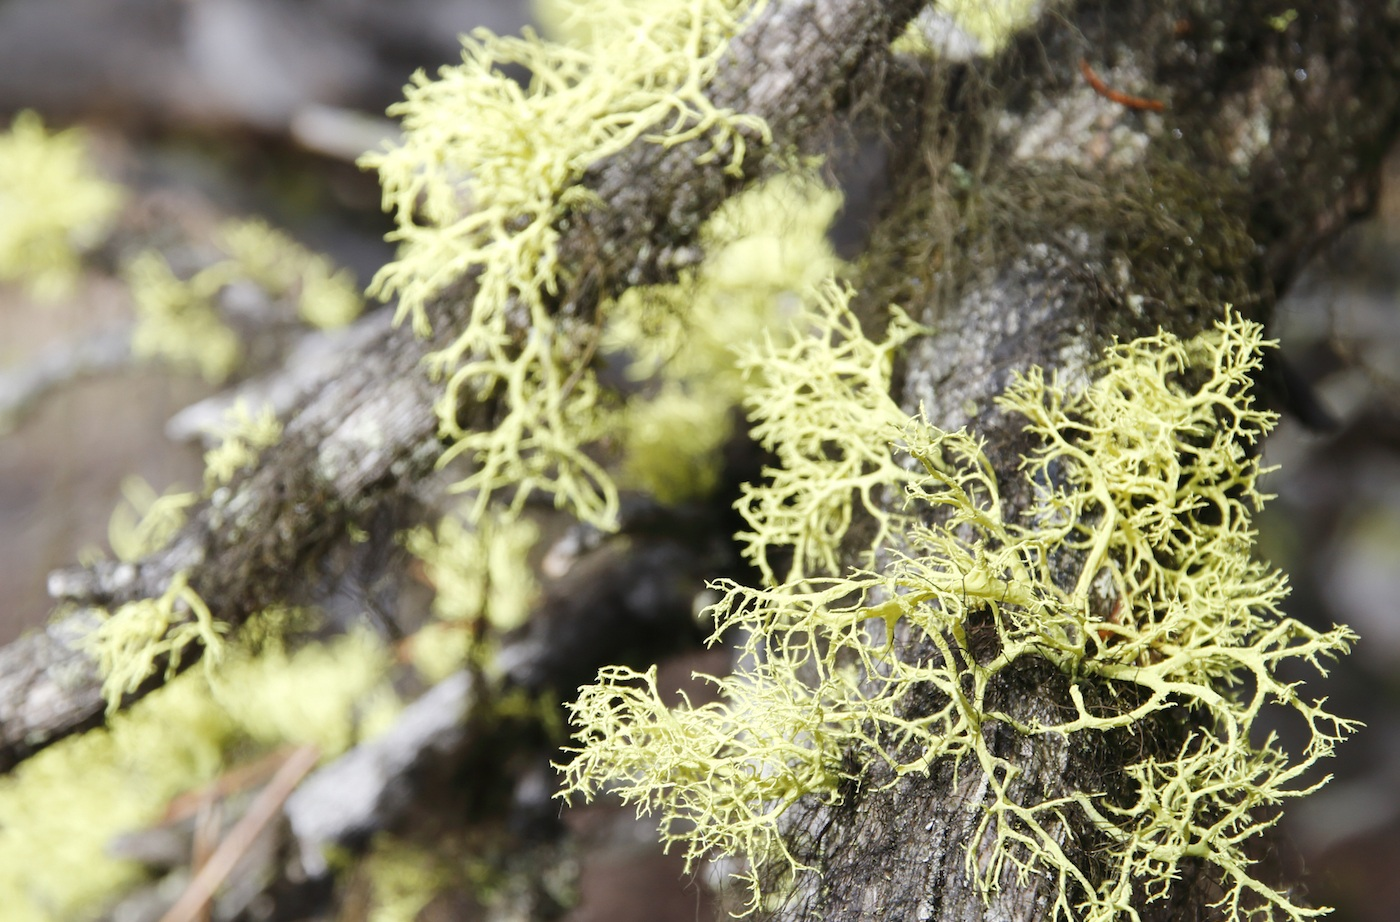 Usnea benefits for health should be taken with caution